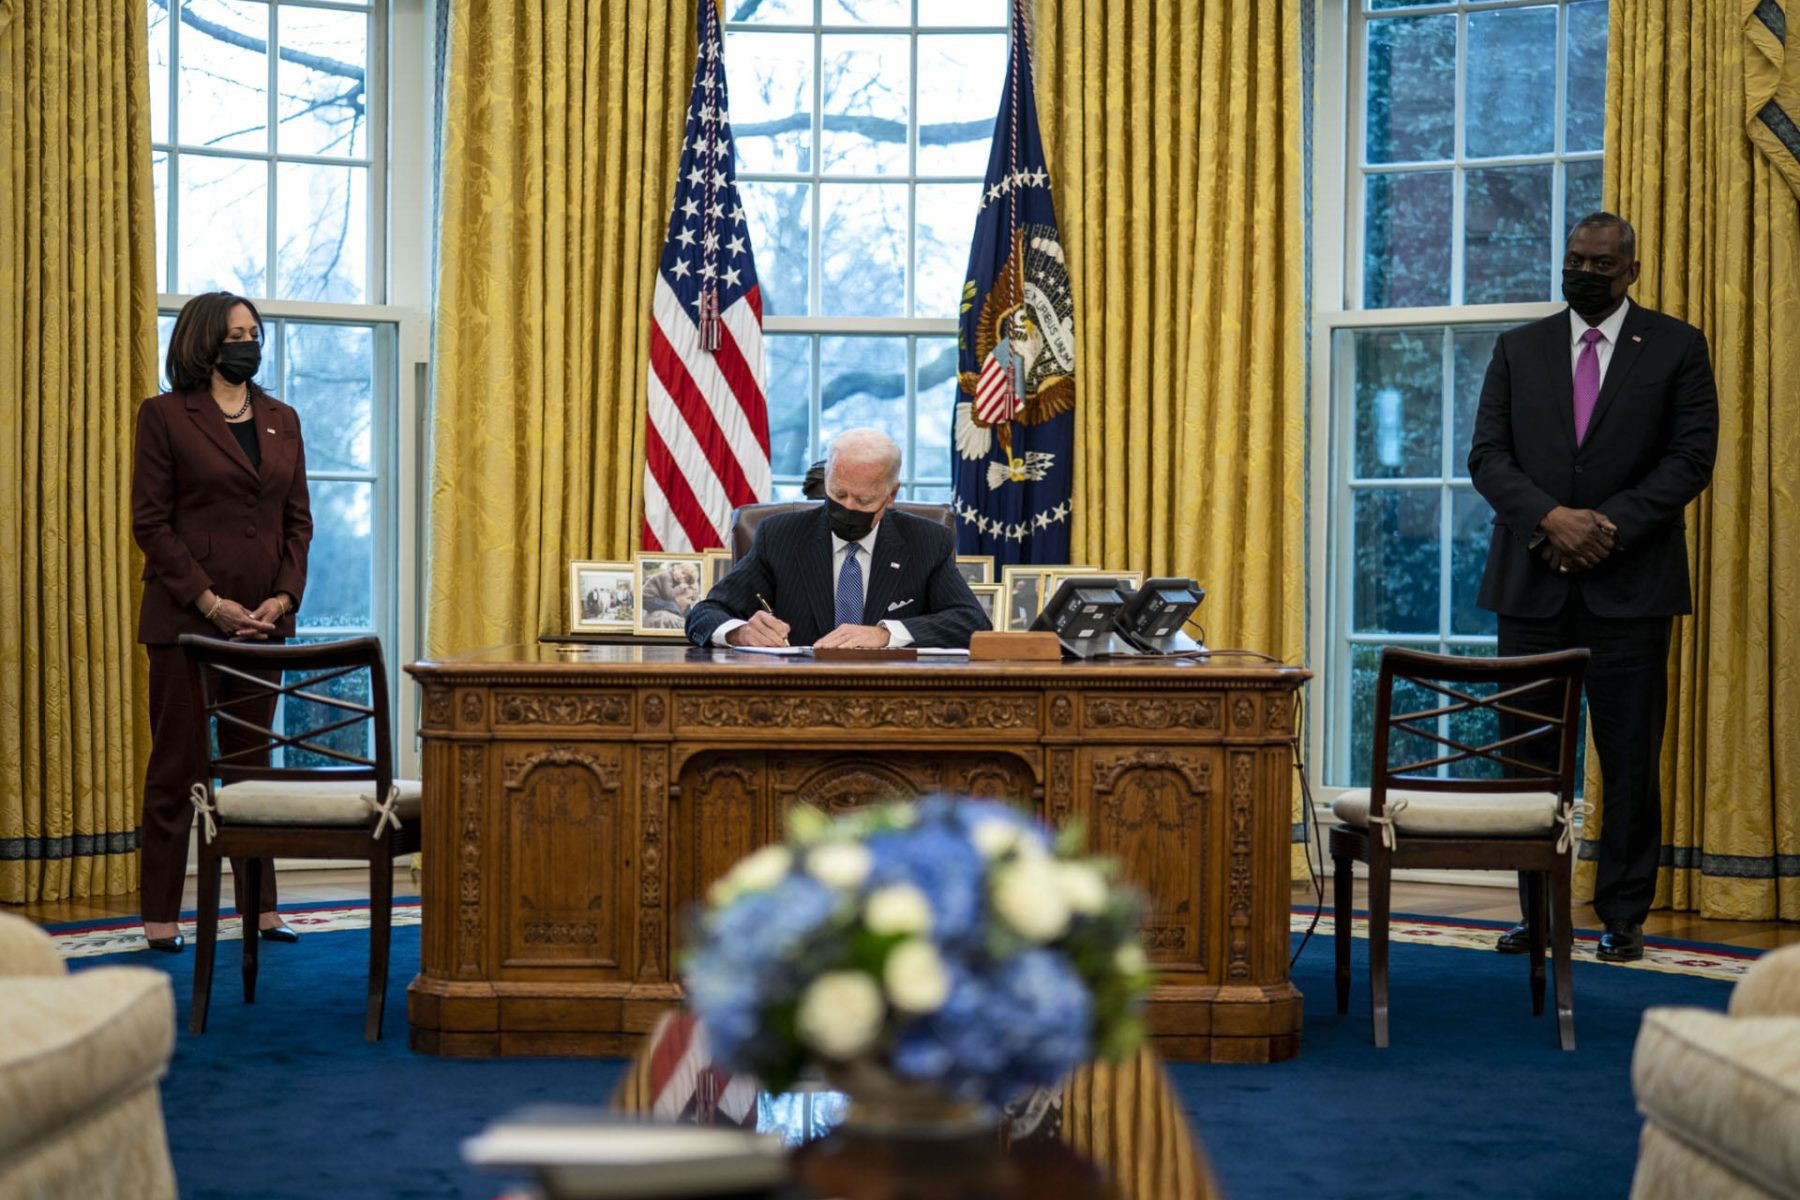 Biden signs order repealing trans military ban